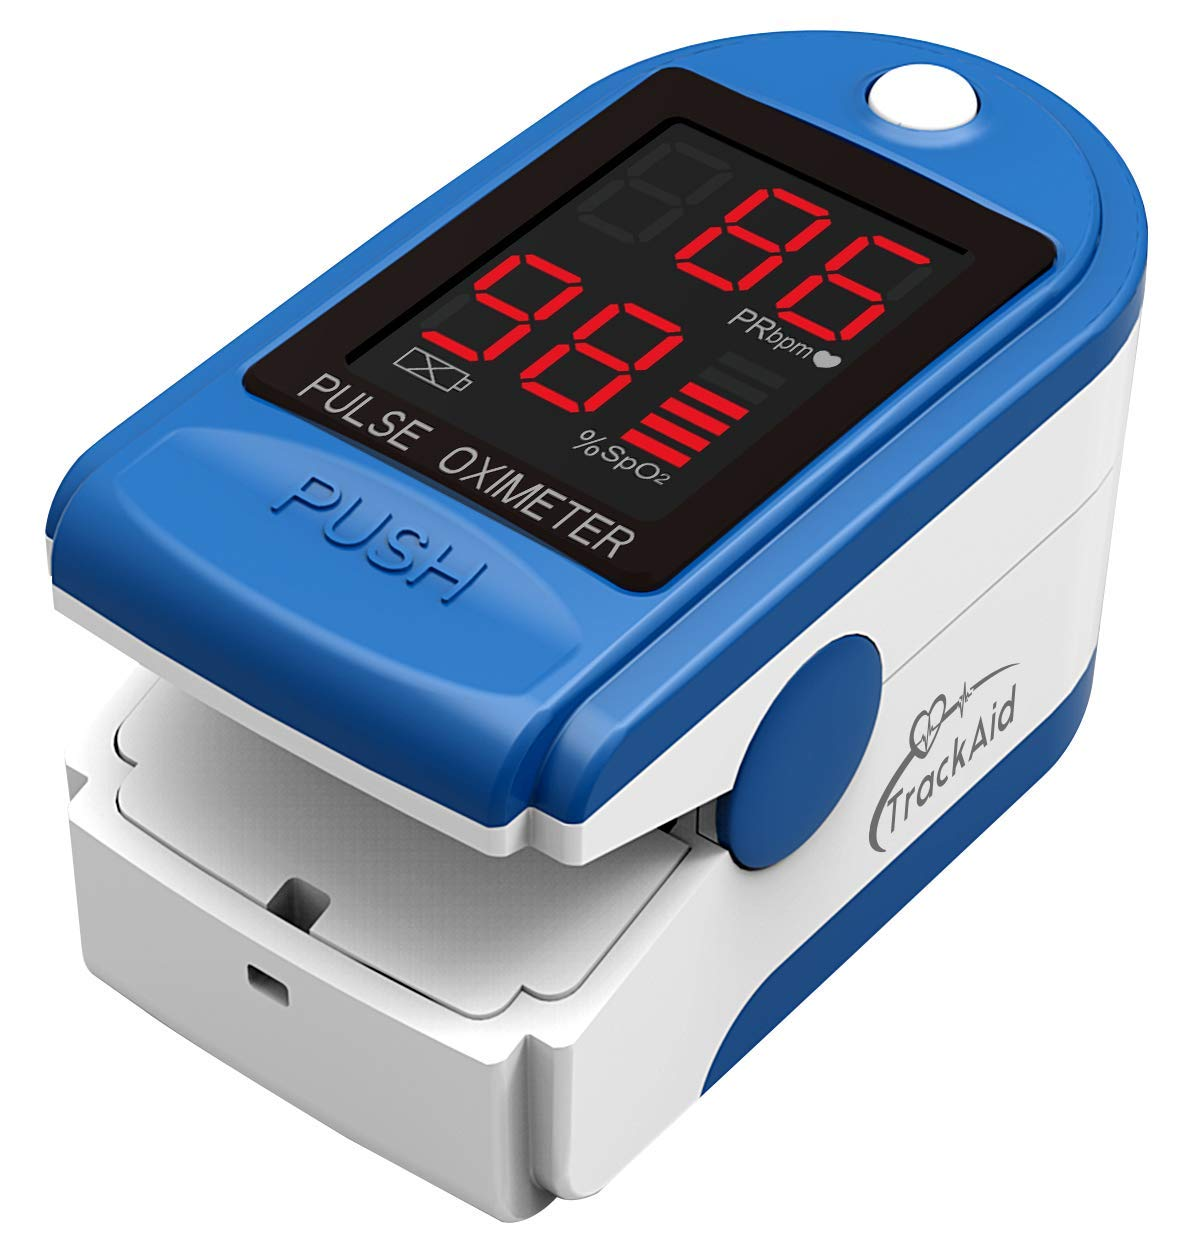 CHOICEMMED Black Dual Color OLED Finger Pulse Oximeter – Blood Oxygen Saturation Monitor with Color OLED Screen Display and Included Batteries – O2 Saturation Monitor